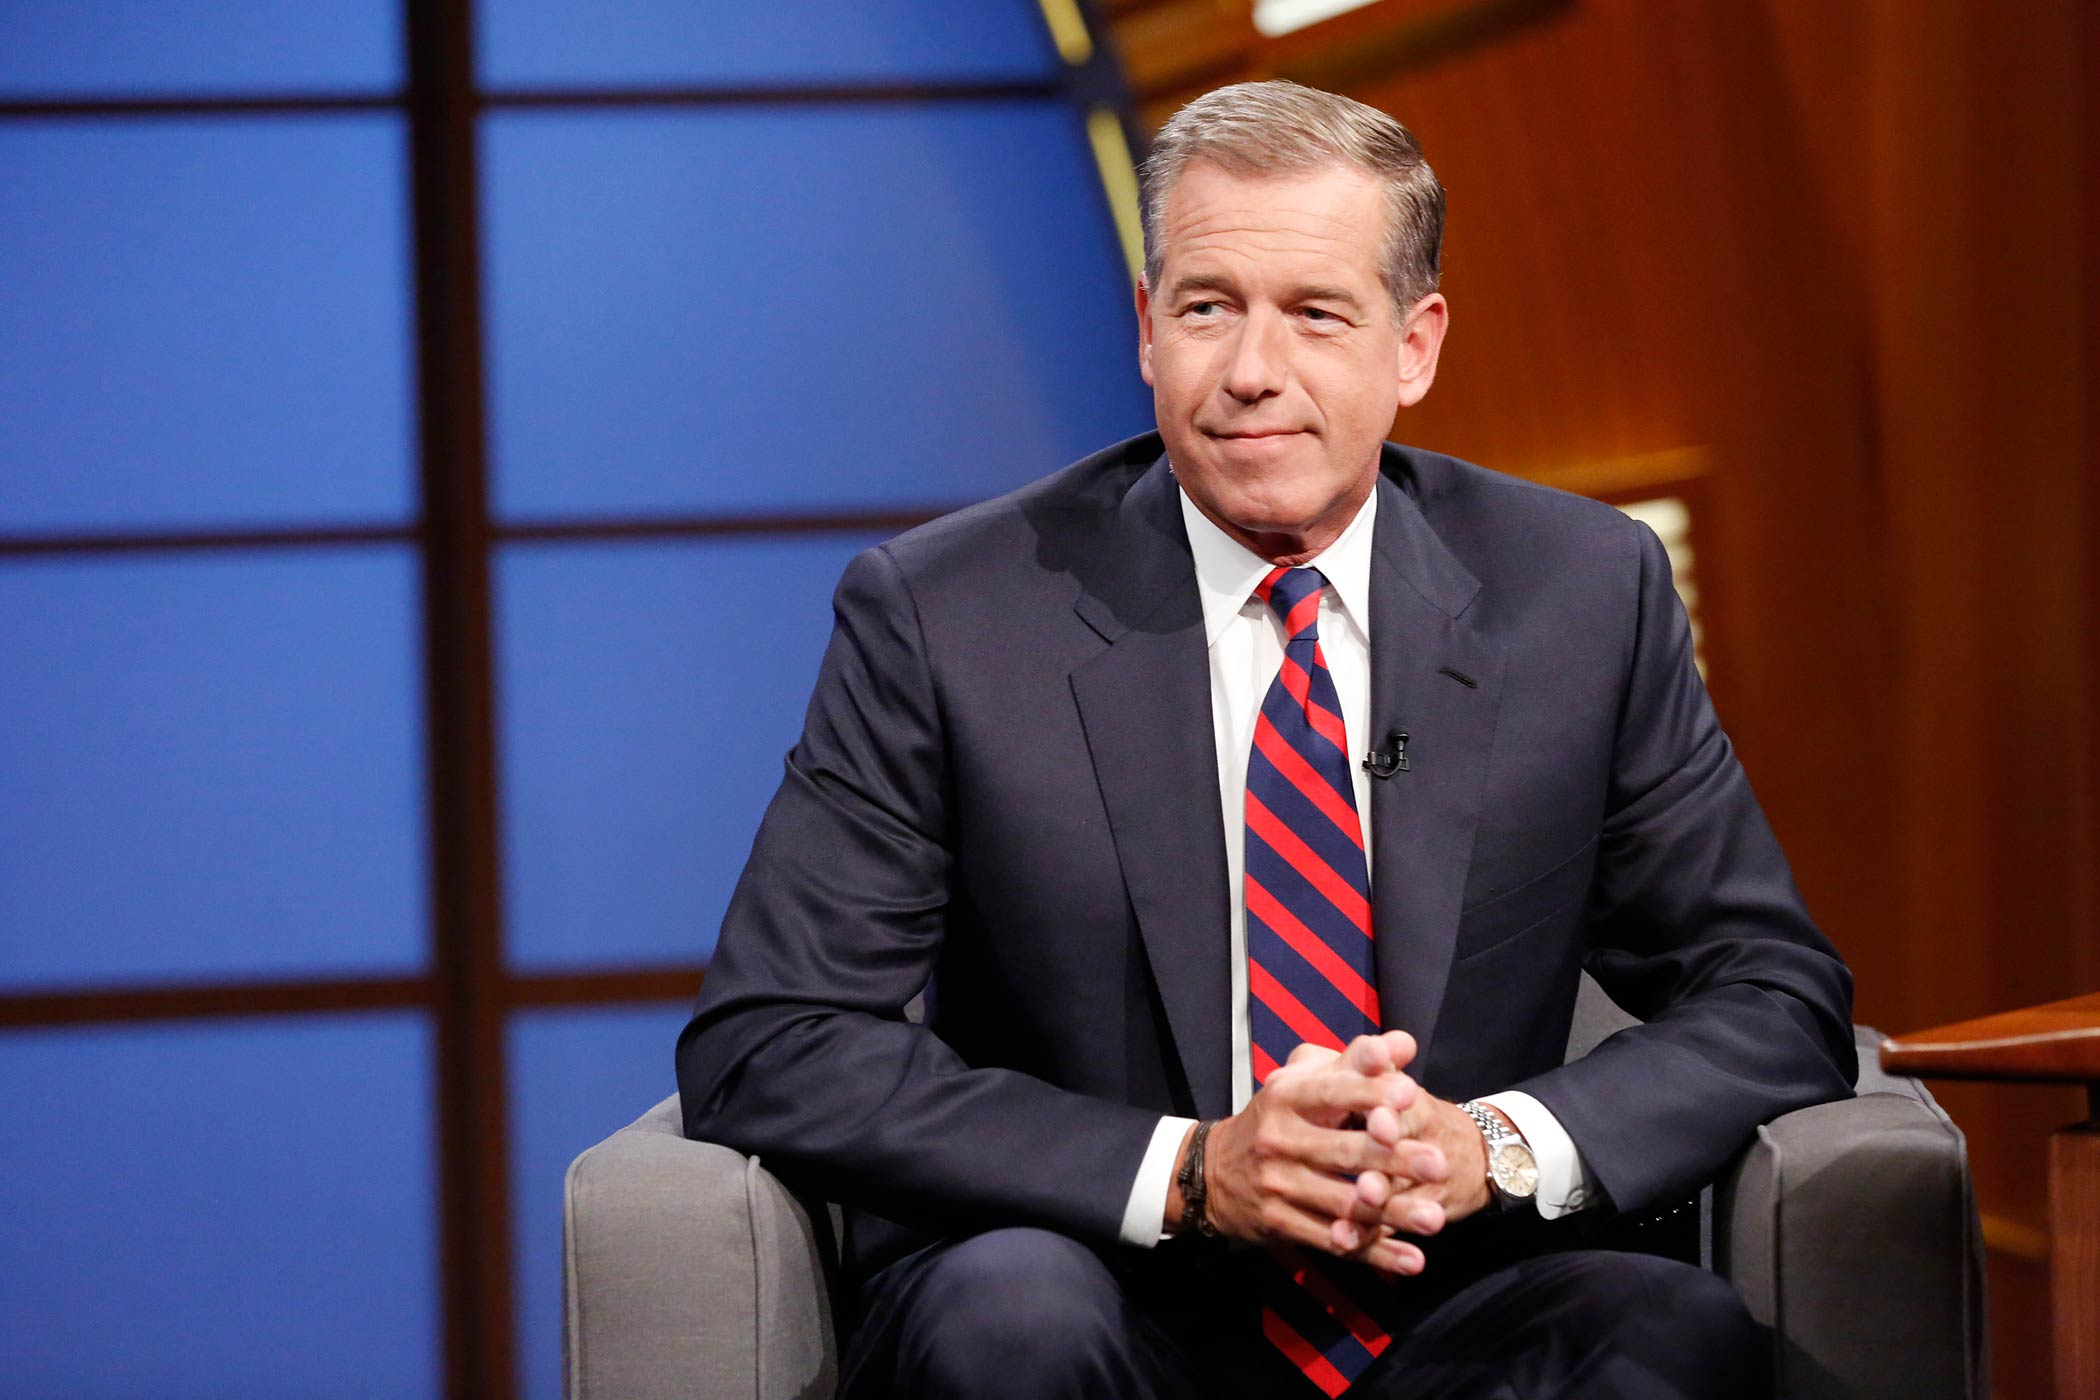 Brian Williams during an interview on Late Night With Seth Meyers on July 7, 2014.